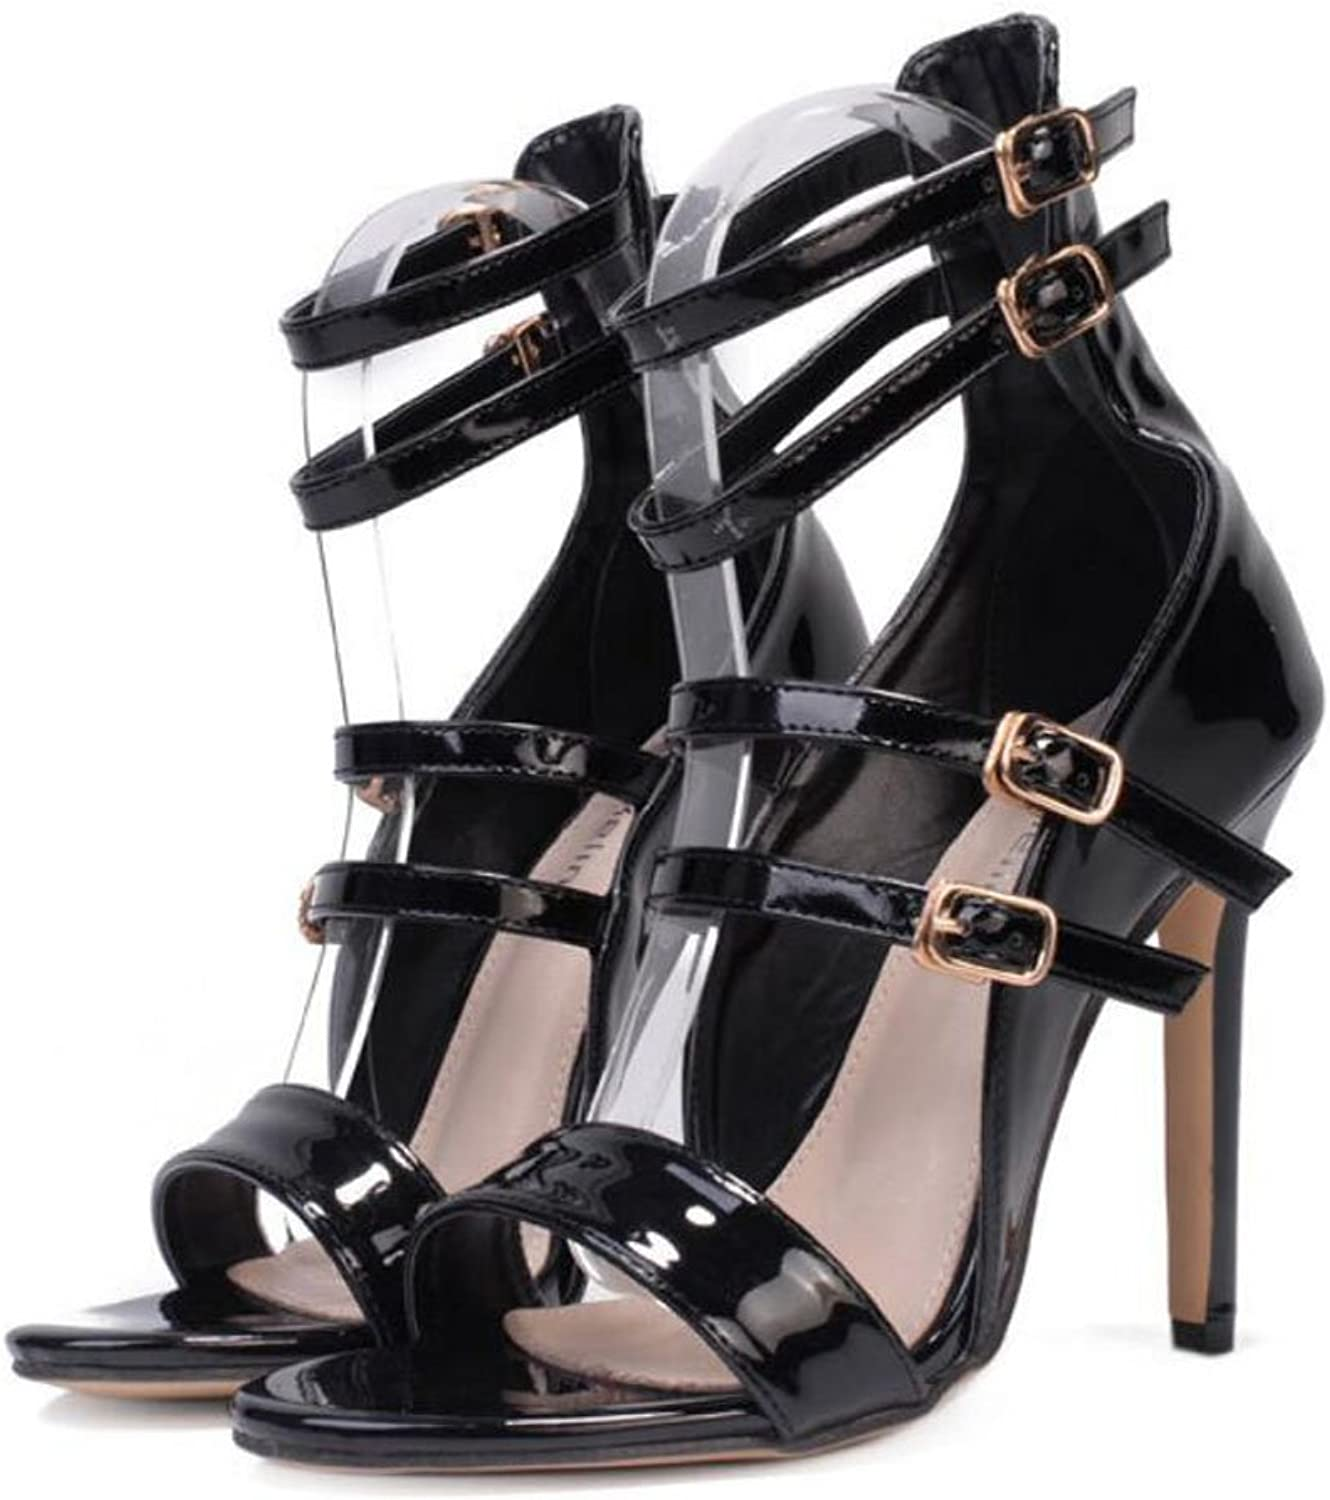 LZWSMGS PU Women's shoes Pu Spring and Summer High-Heeled Belt Buckle Sandals Comfortable Wild Black bluee 35-40cm Ladies Sandals (color   Black, Size   36)